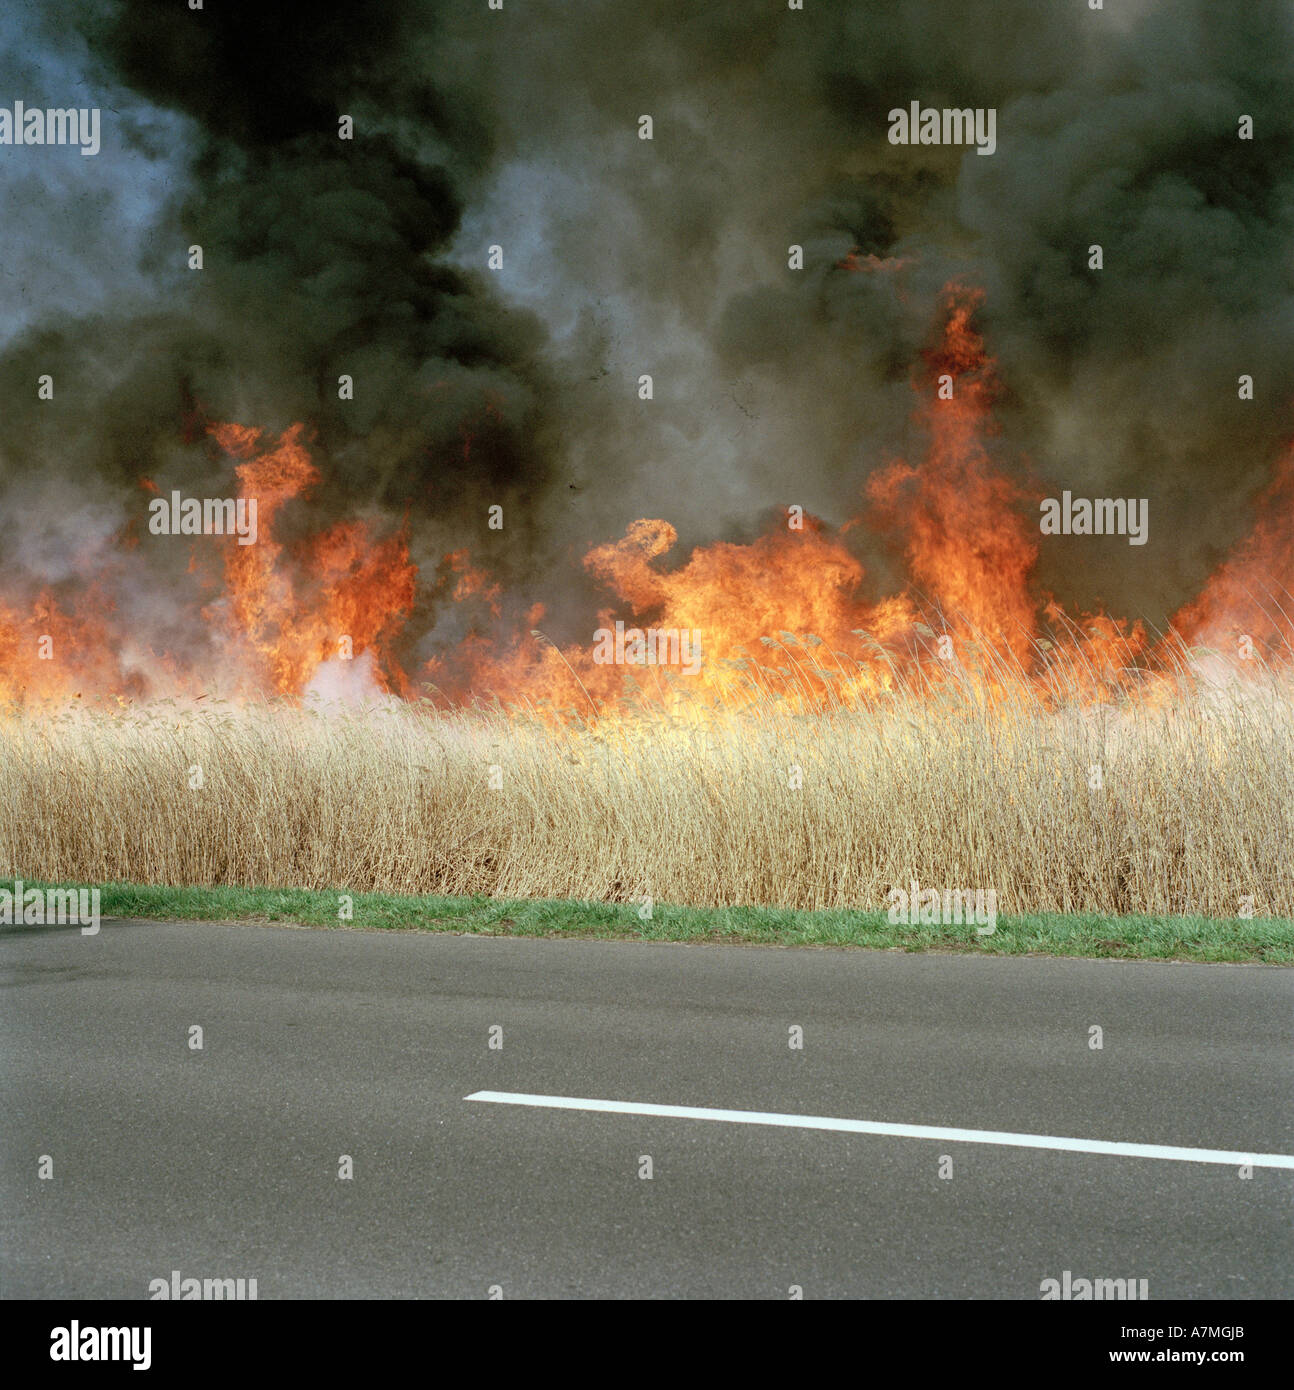 A fire burning on a roadside - Stock Image